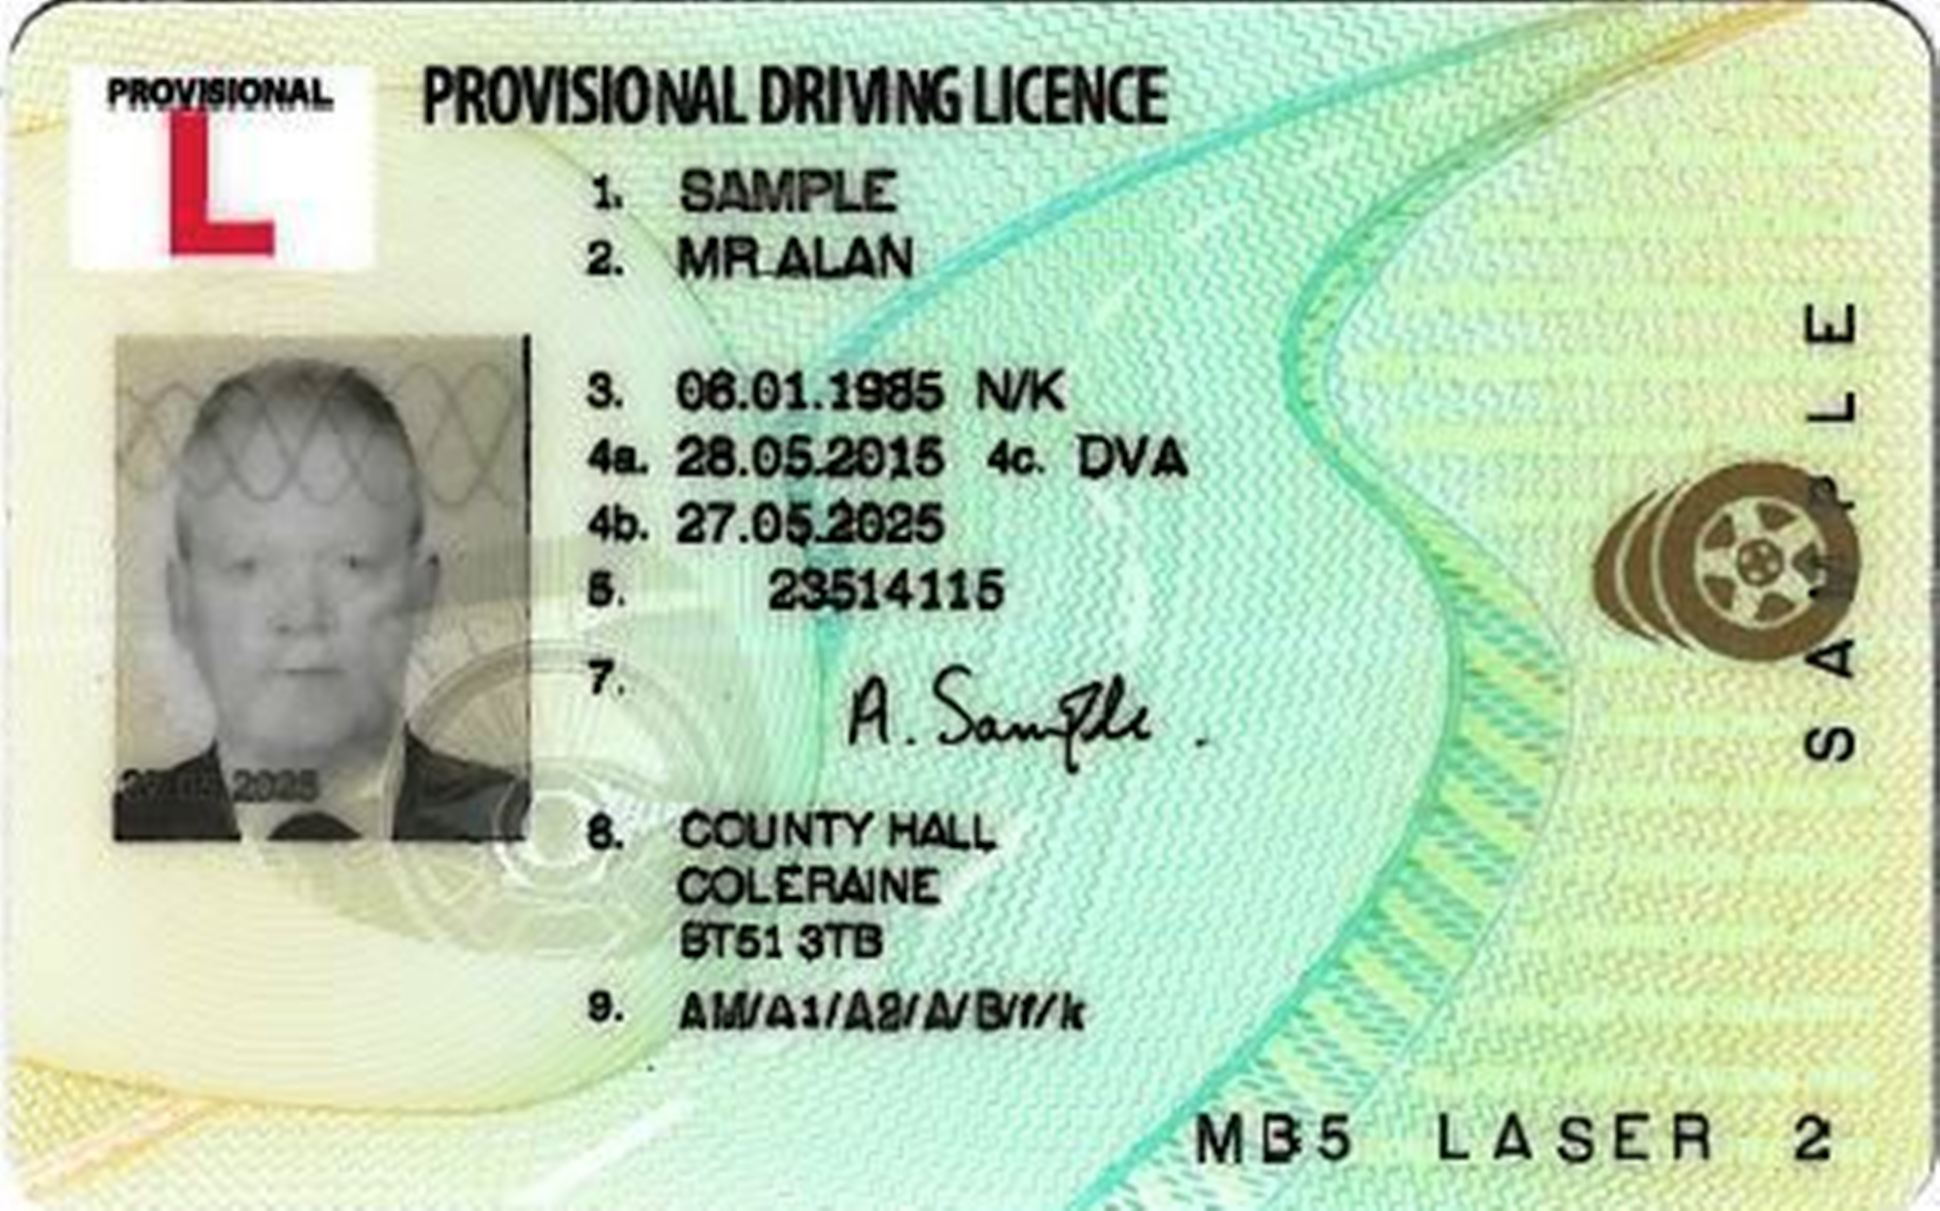 Provisonal driving license